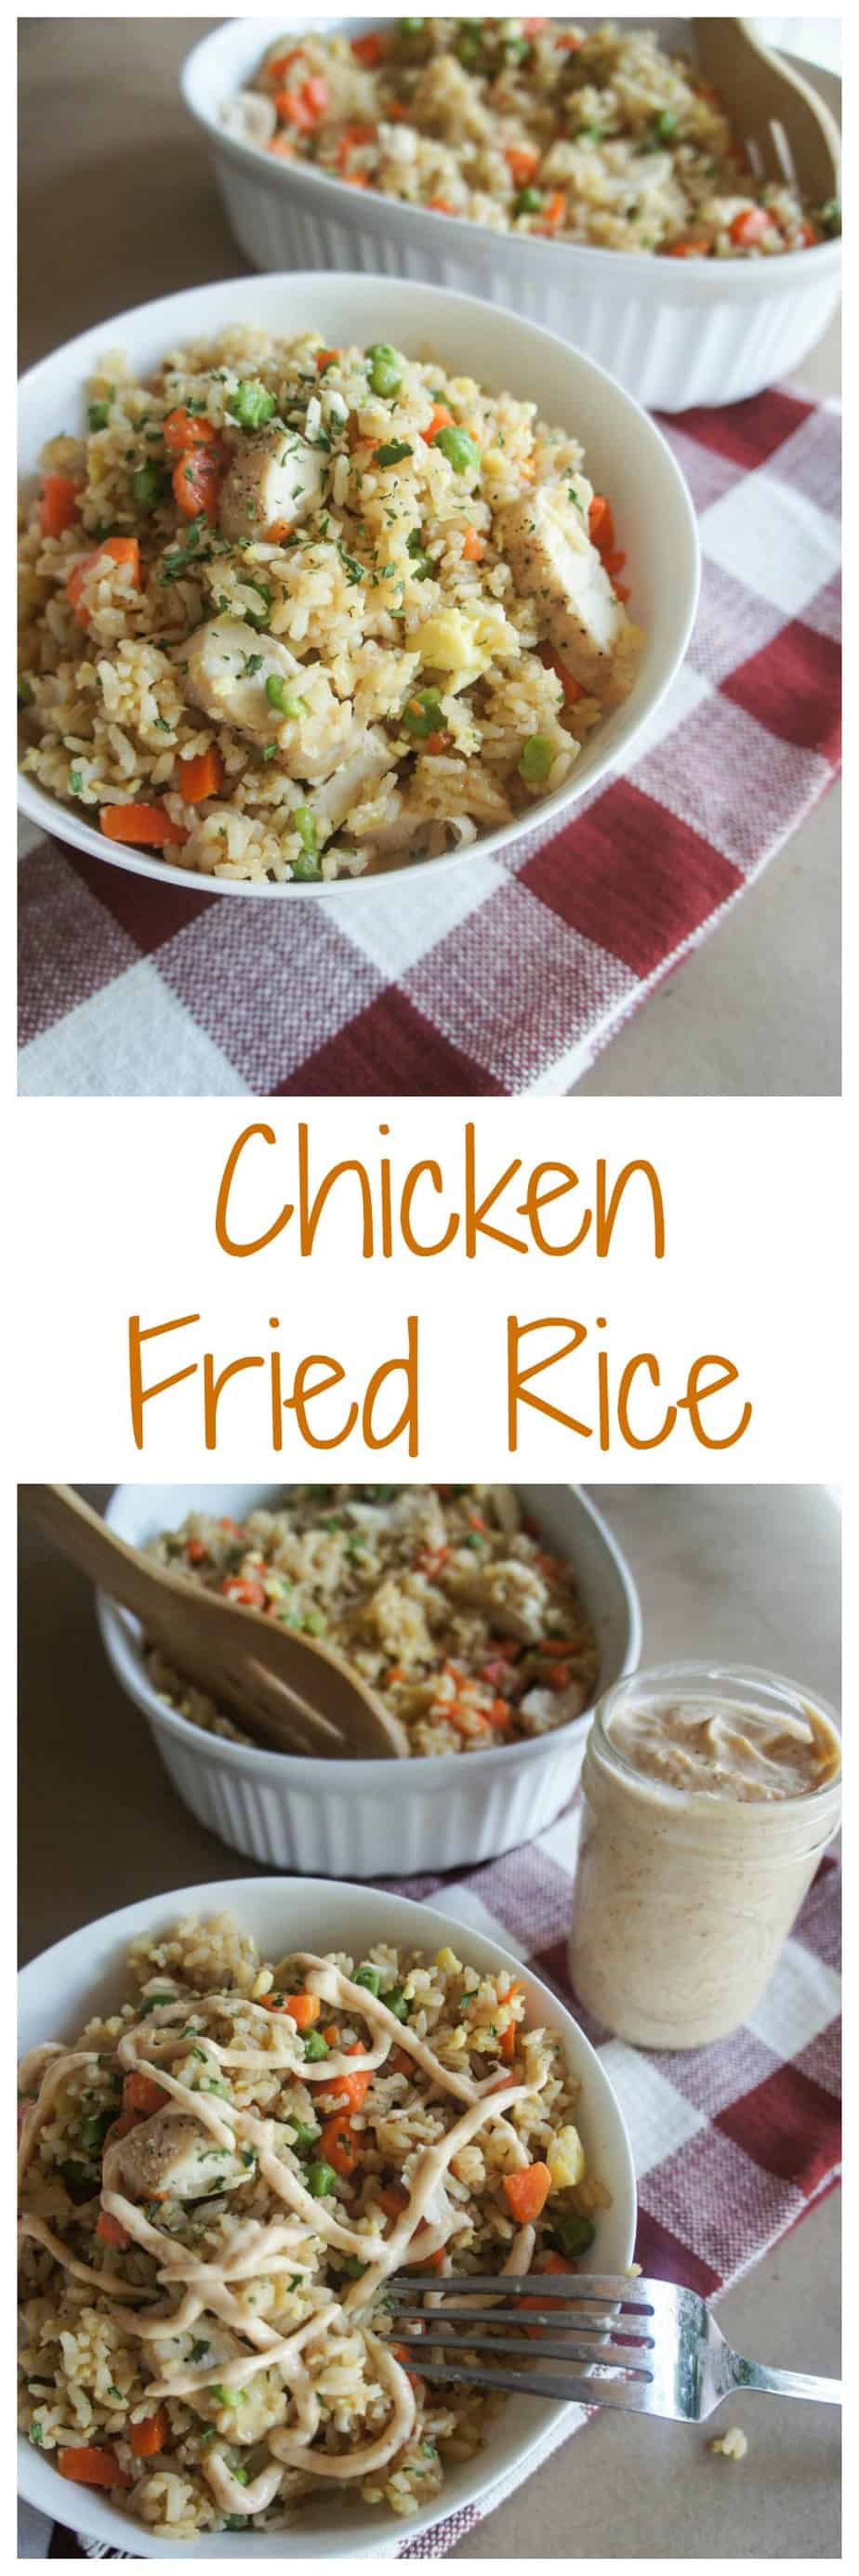 Chicken Fried Rice. The perfect, hassle free summertime dinner ready in less than 30 minutes!